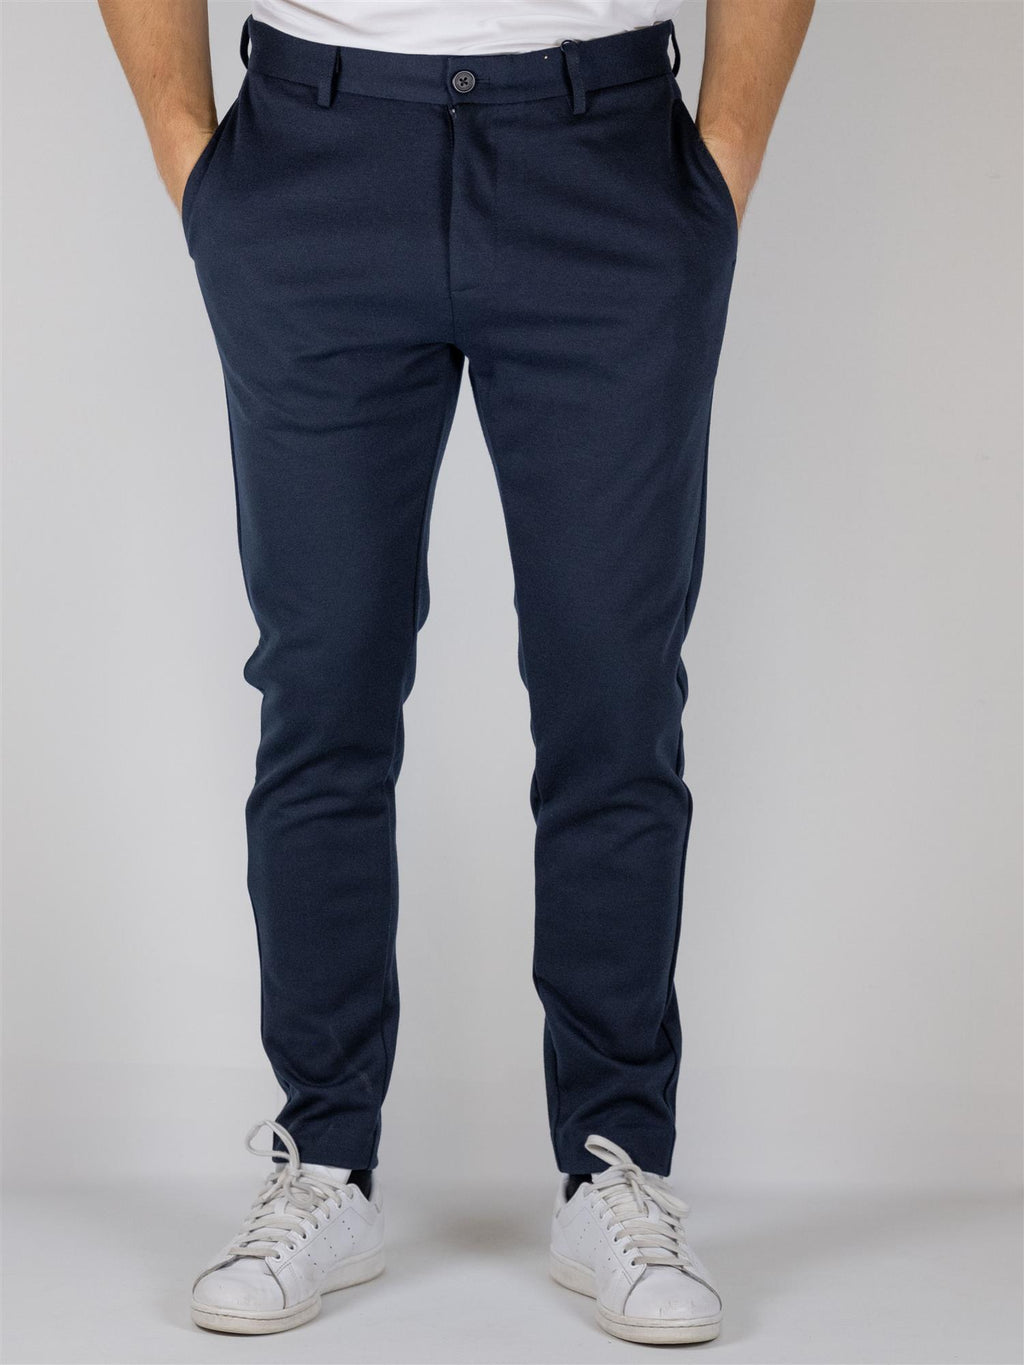 Milano Basic+ Flex pant - Navy